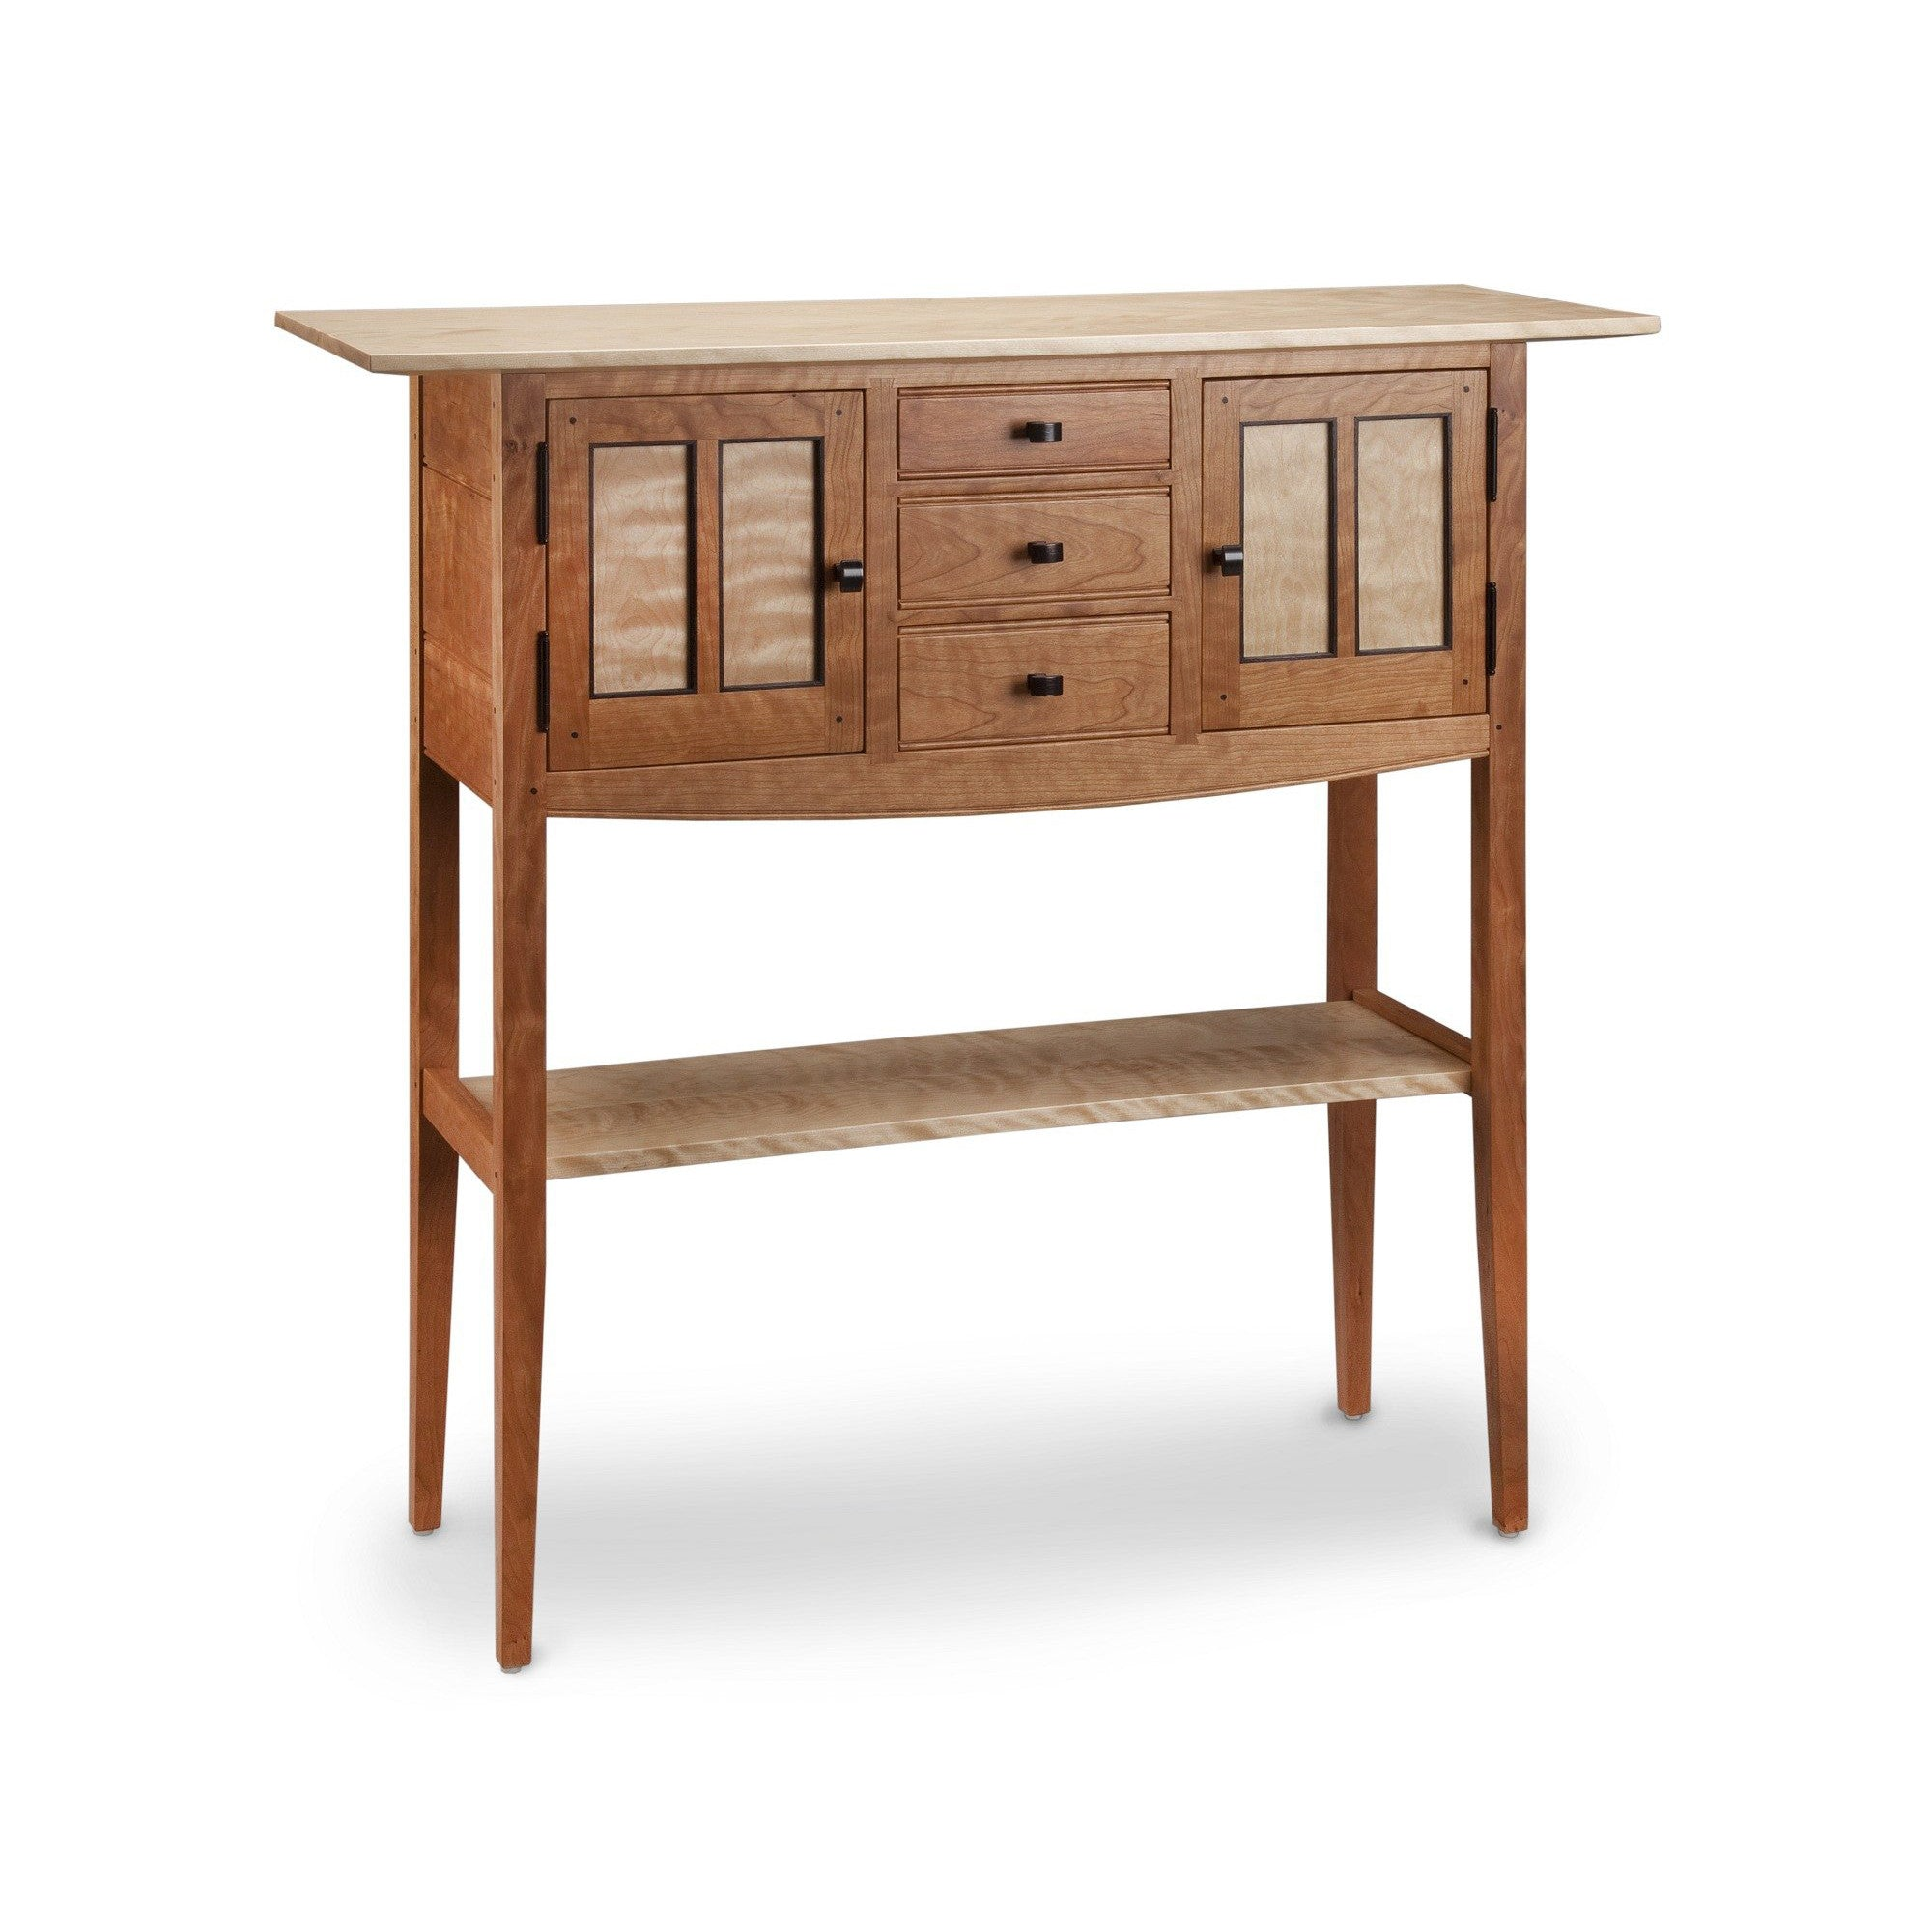 furniture for a foyer. Cherry Foyer Sideboard Table By Thomas William Furniture Furniture For A Foyer .